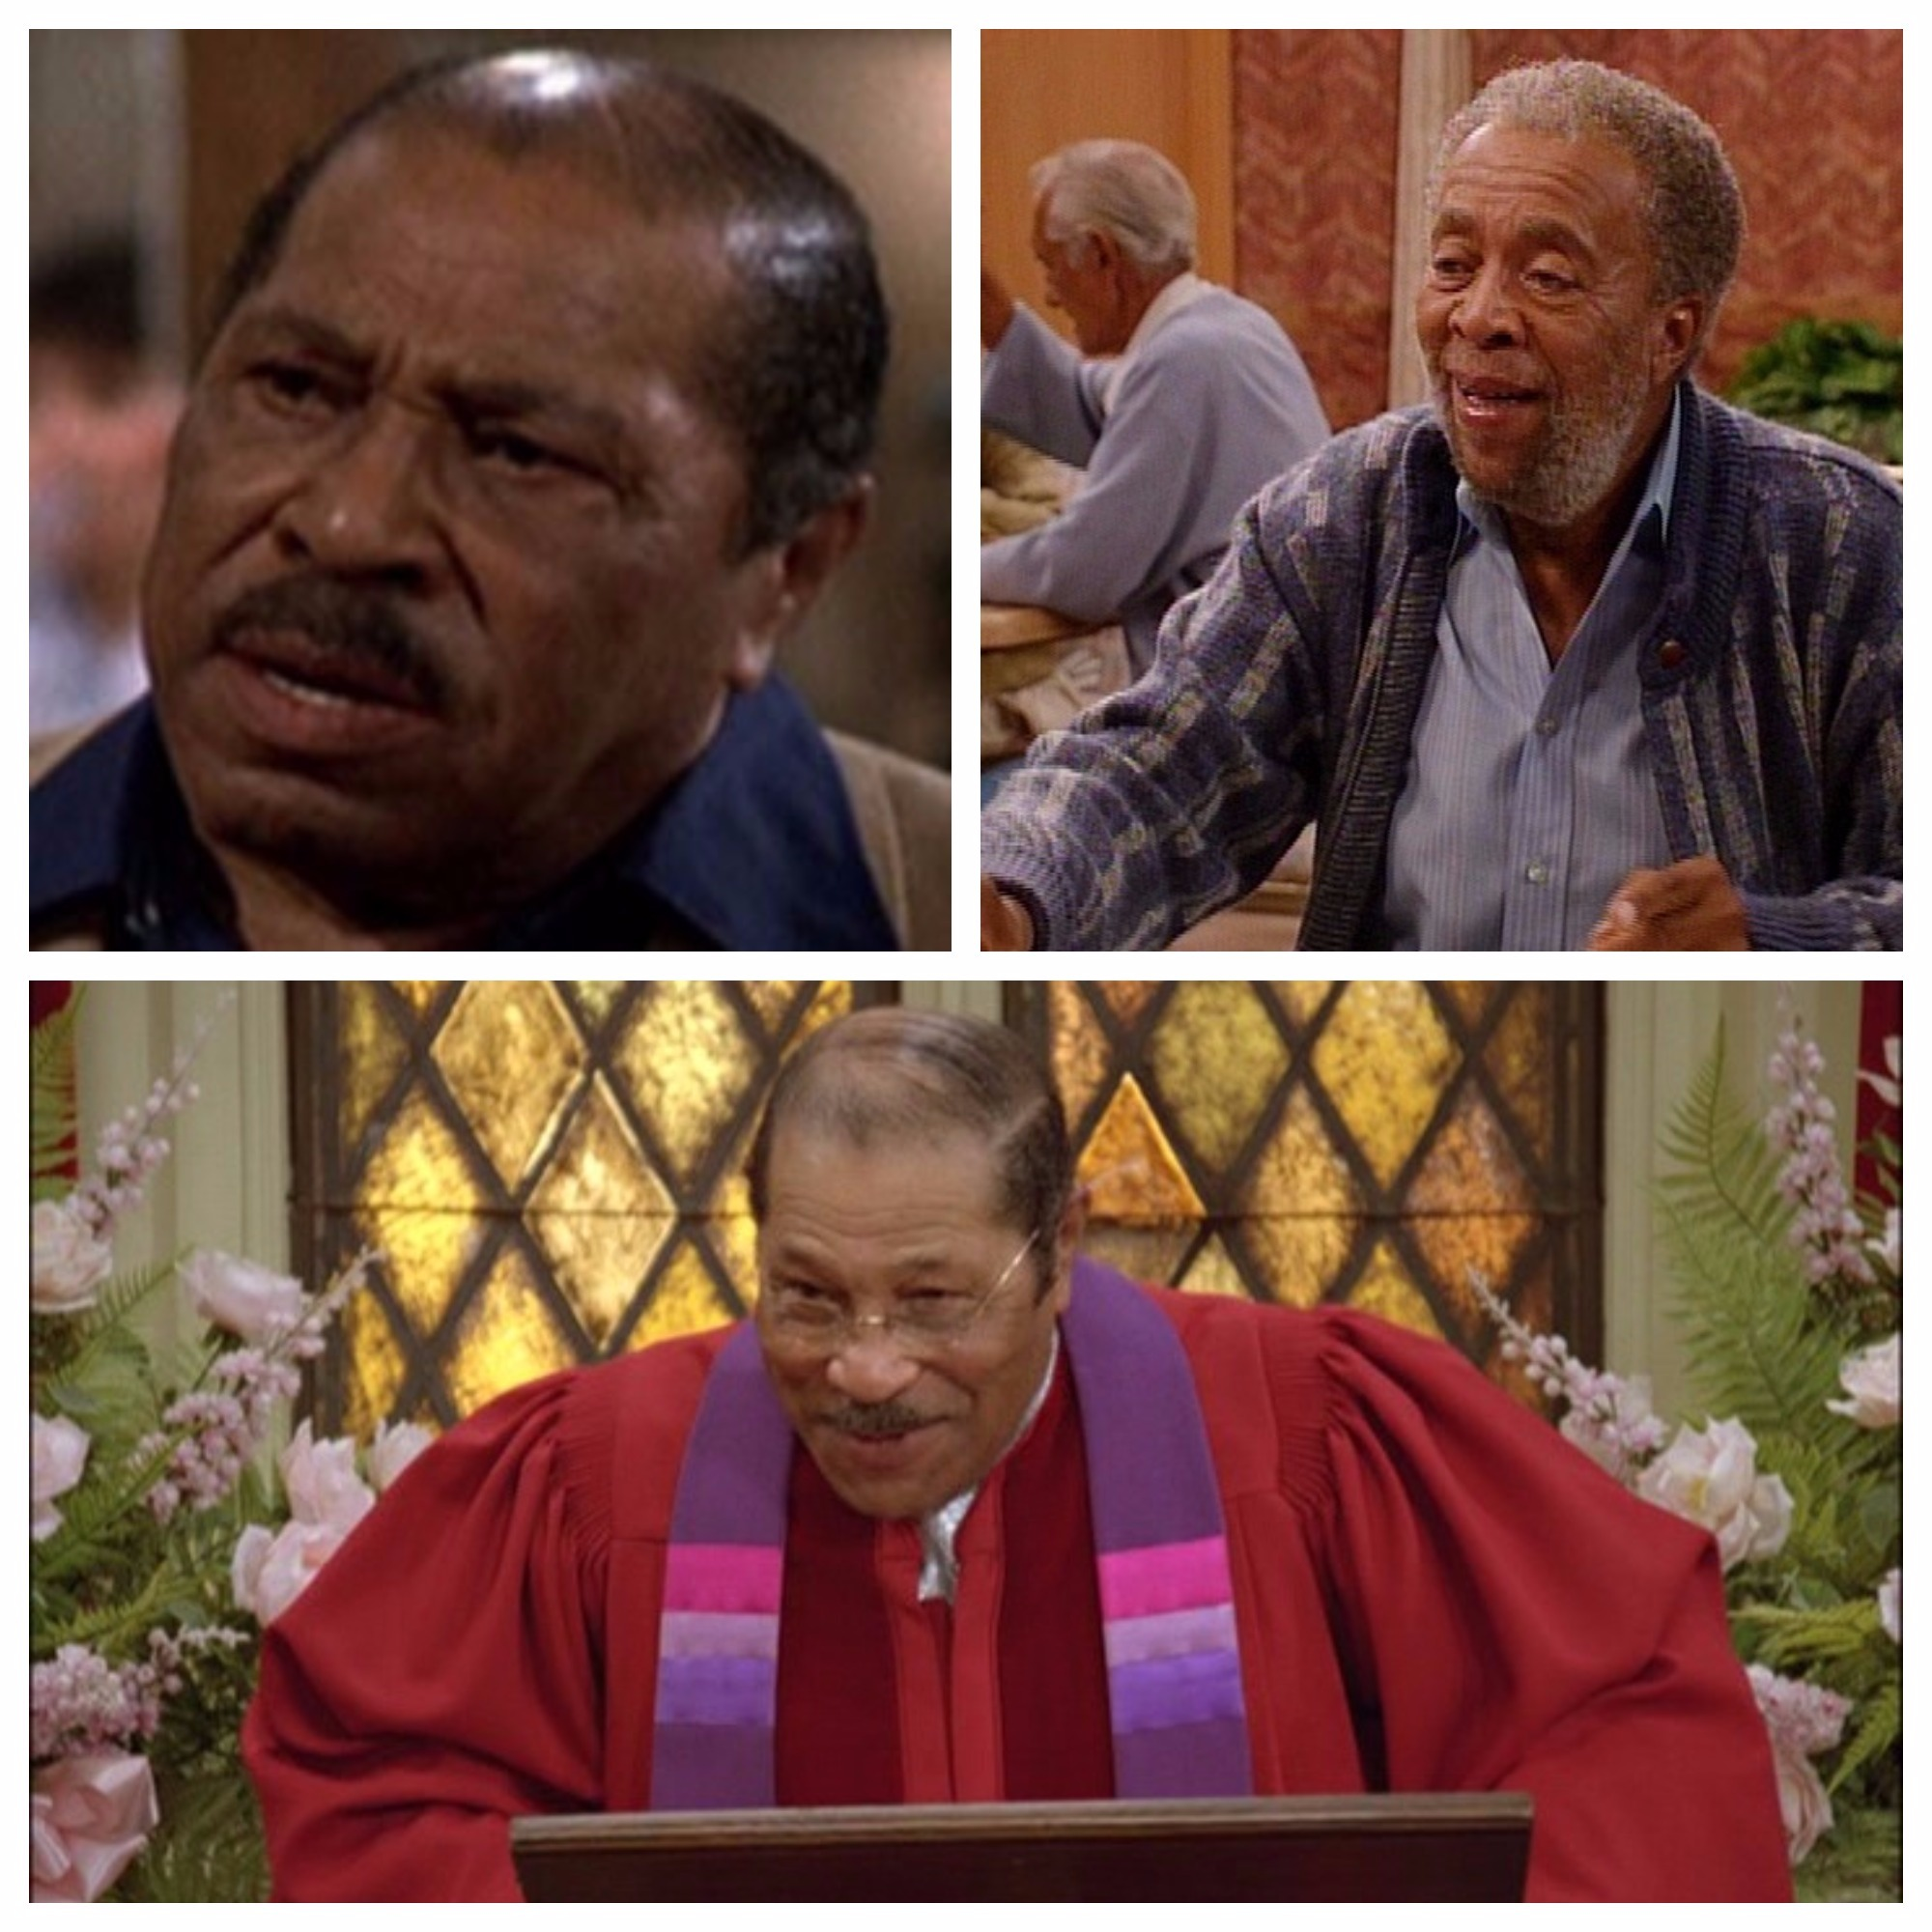 Don Bexley, Sanford and Son, Don Bexley on Full House, Don Bexley young and older, celebs, movies/tv